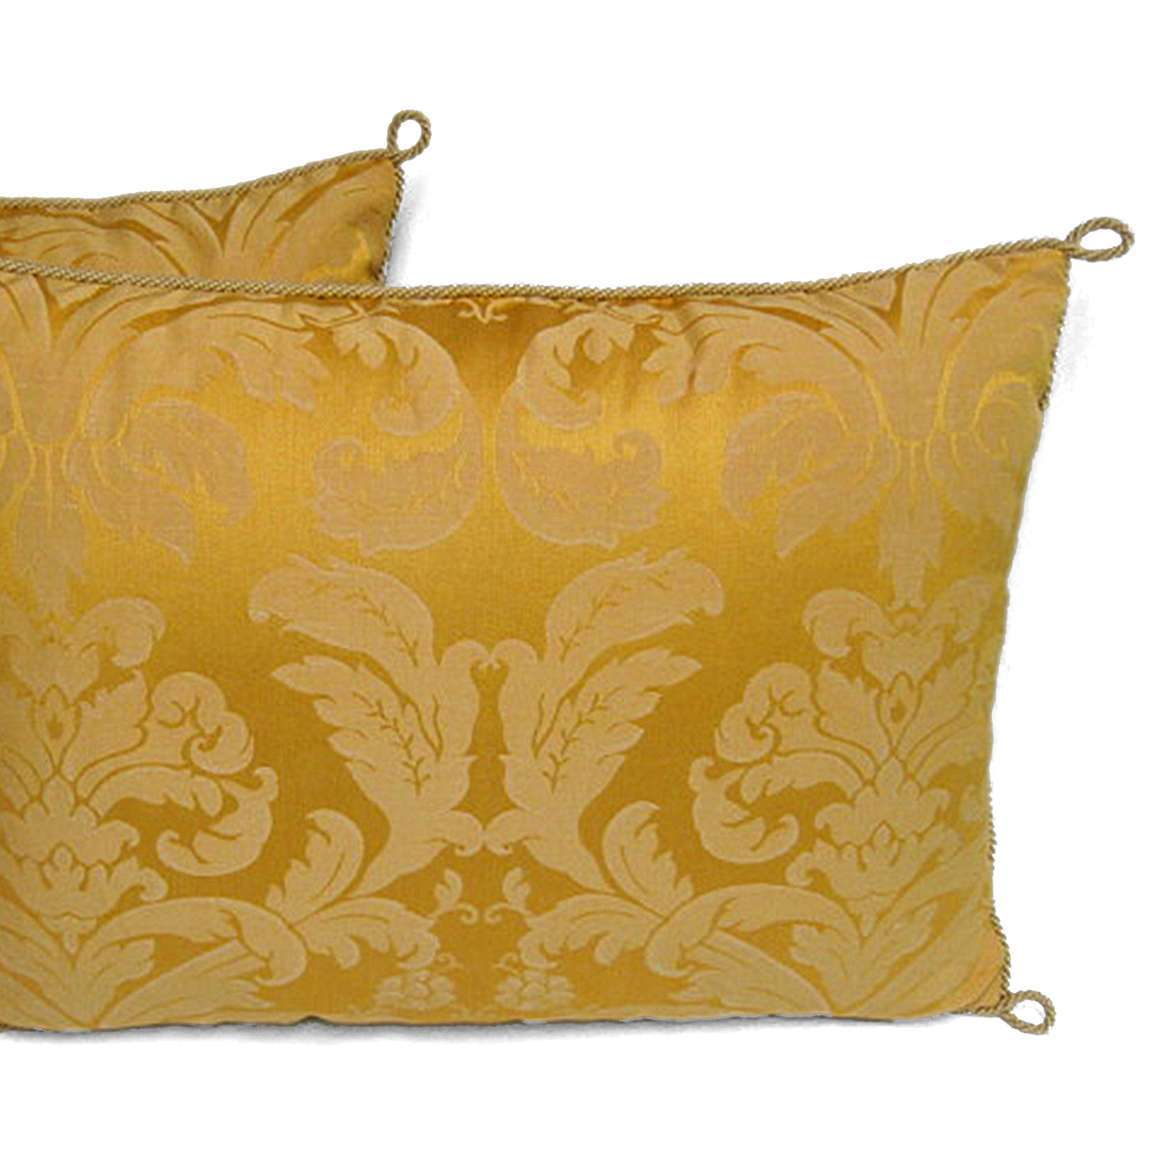 3014 – Pair of Handmade Yellow Damask Pillows with a Floral Pattern